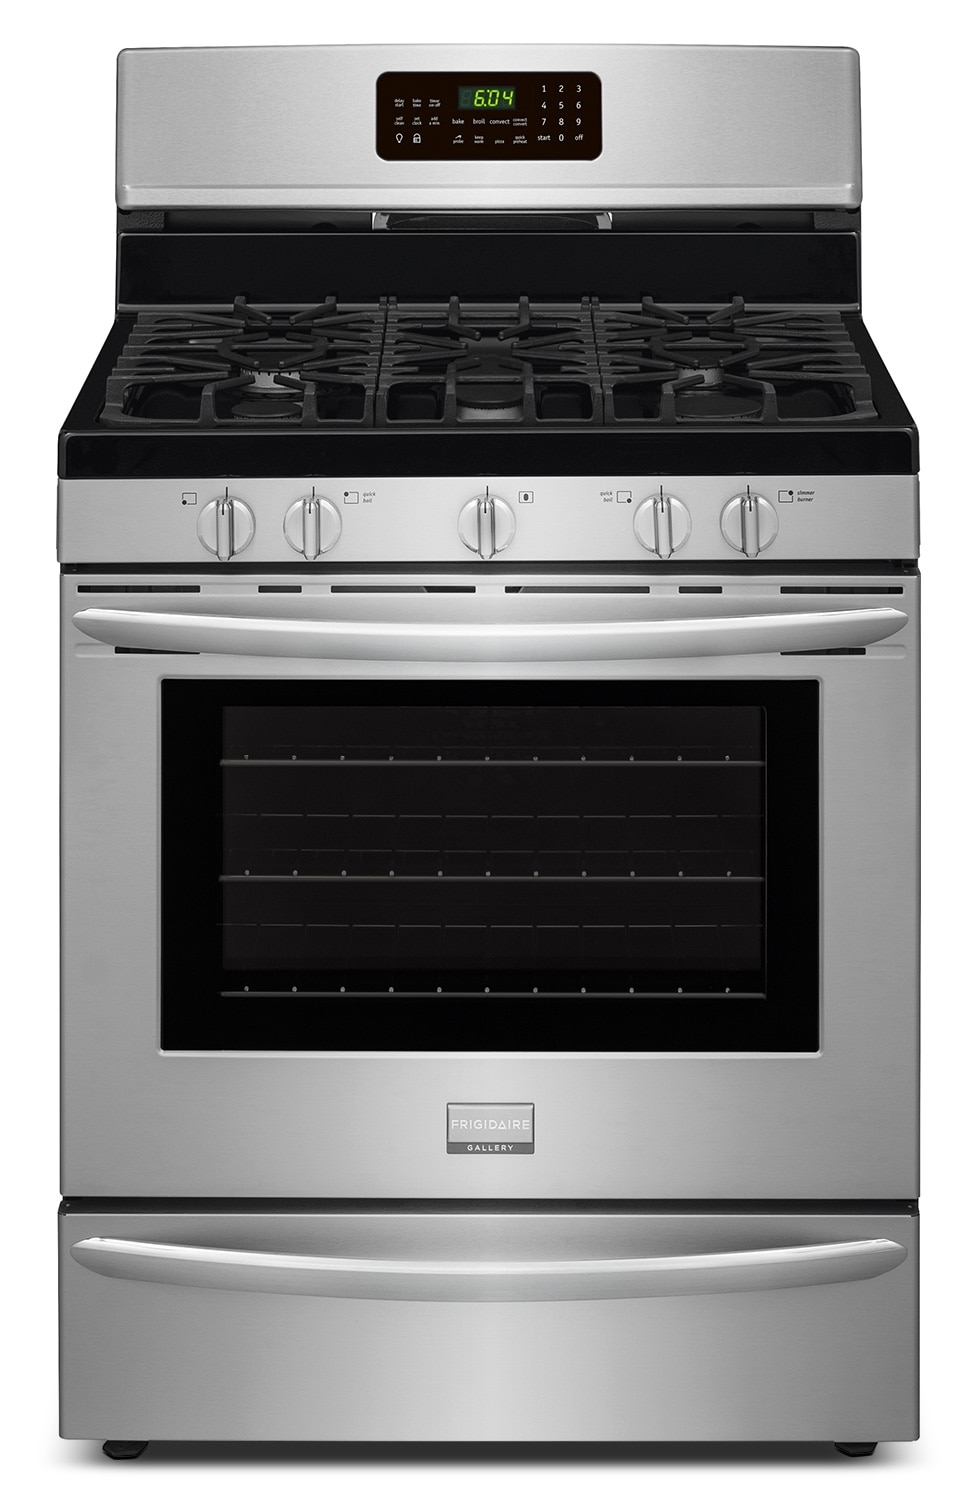 Frigidaire Gallery Stainless Steel Freestanding Gas Convection Range (5.0 Cu. Ft.) - FGGF3058RF